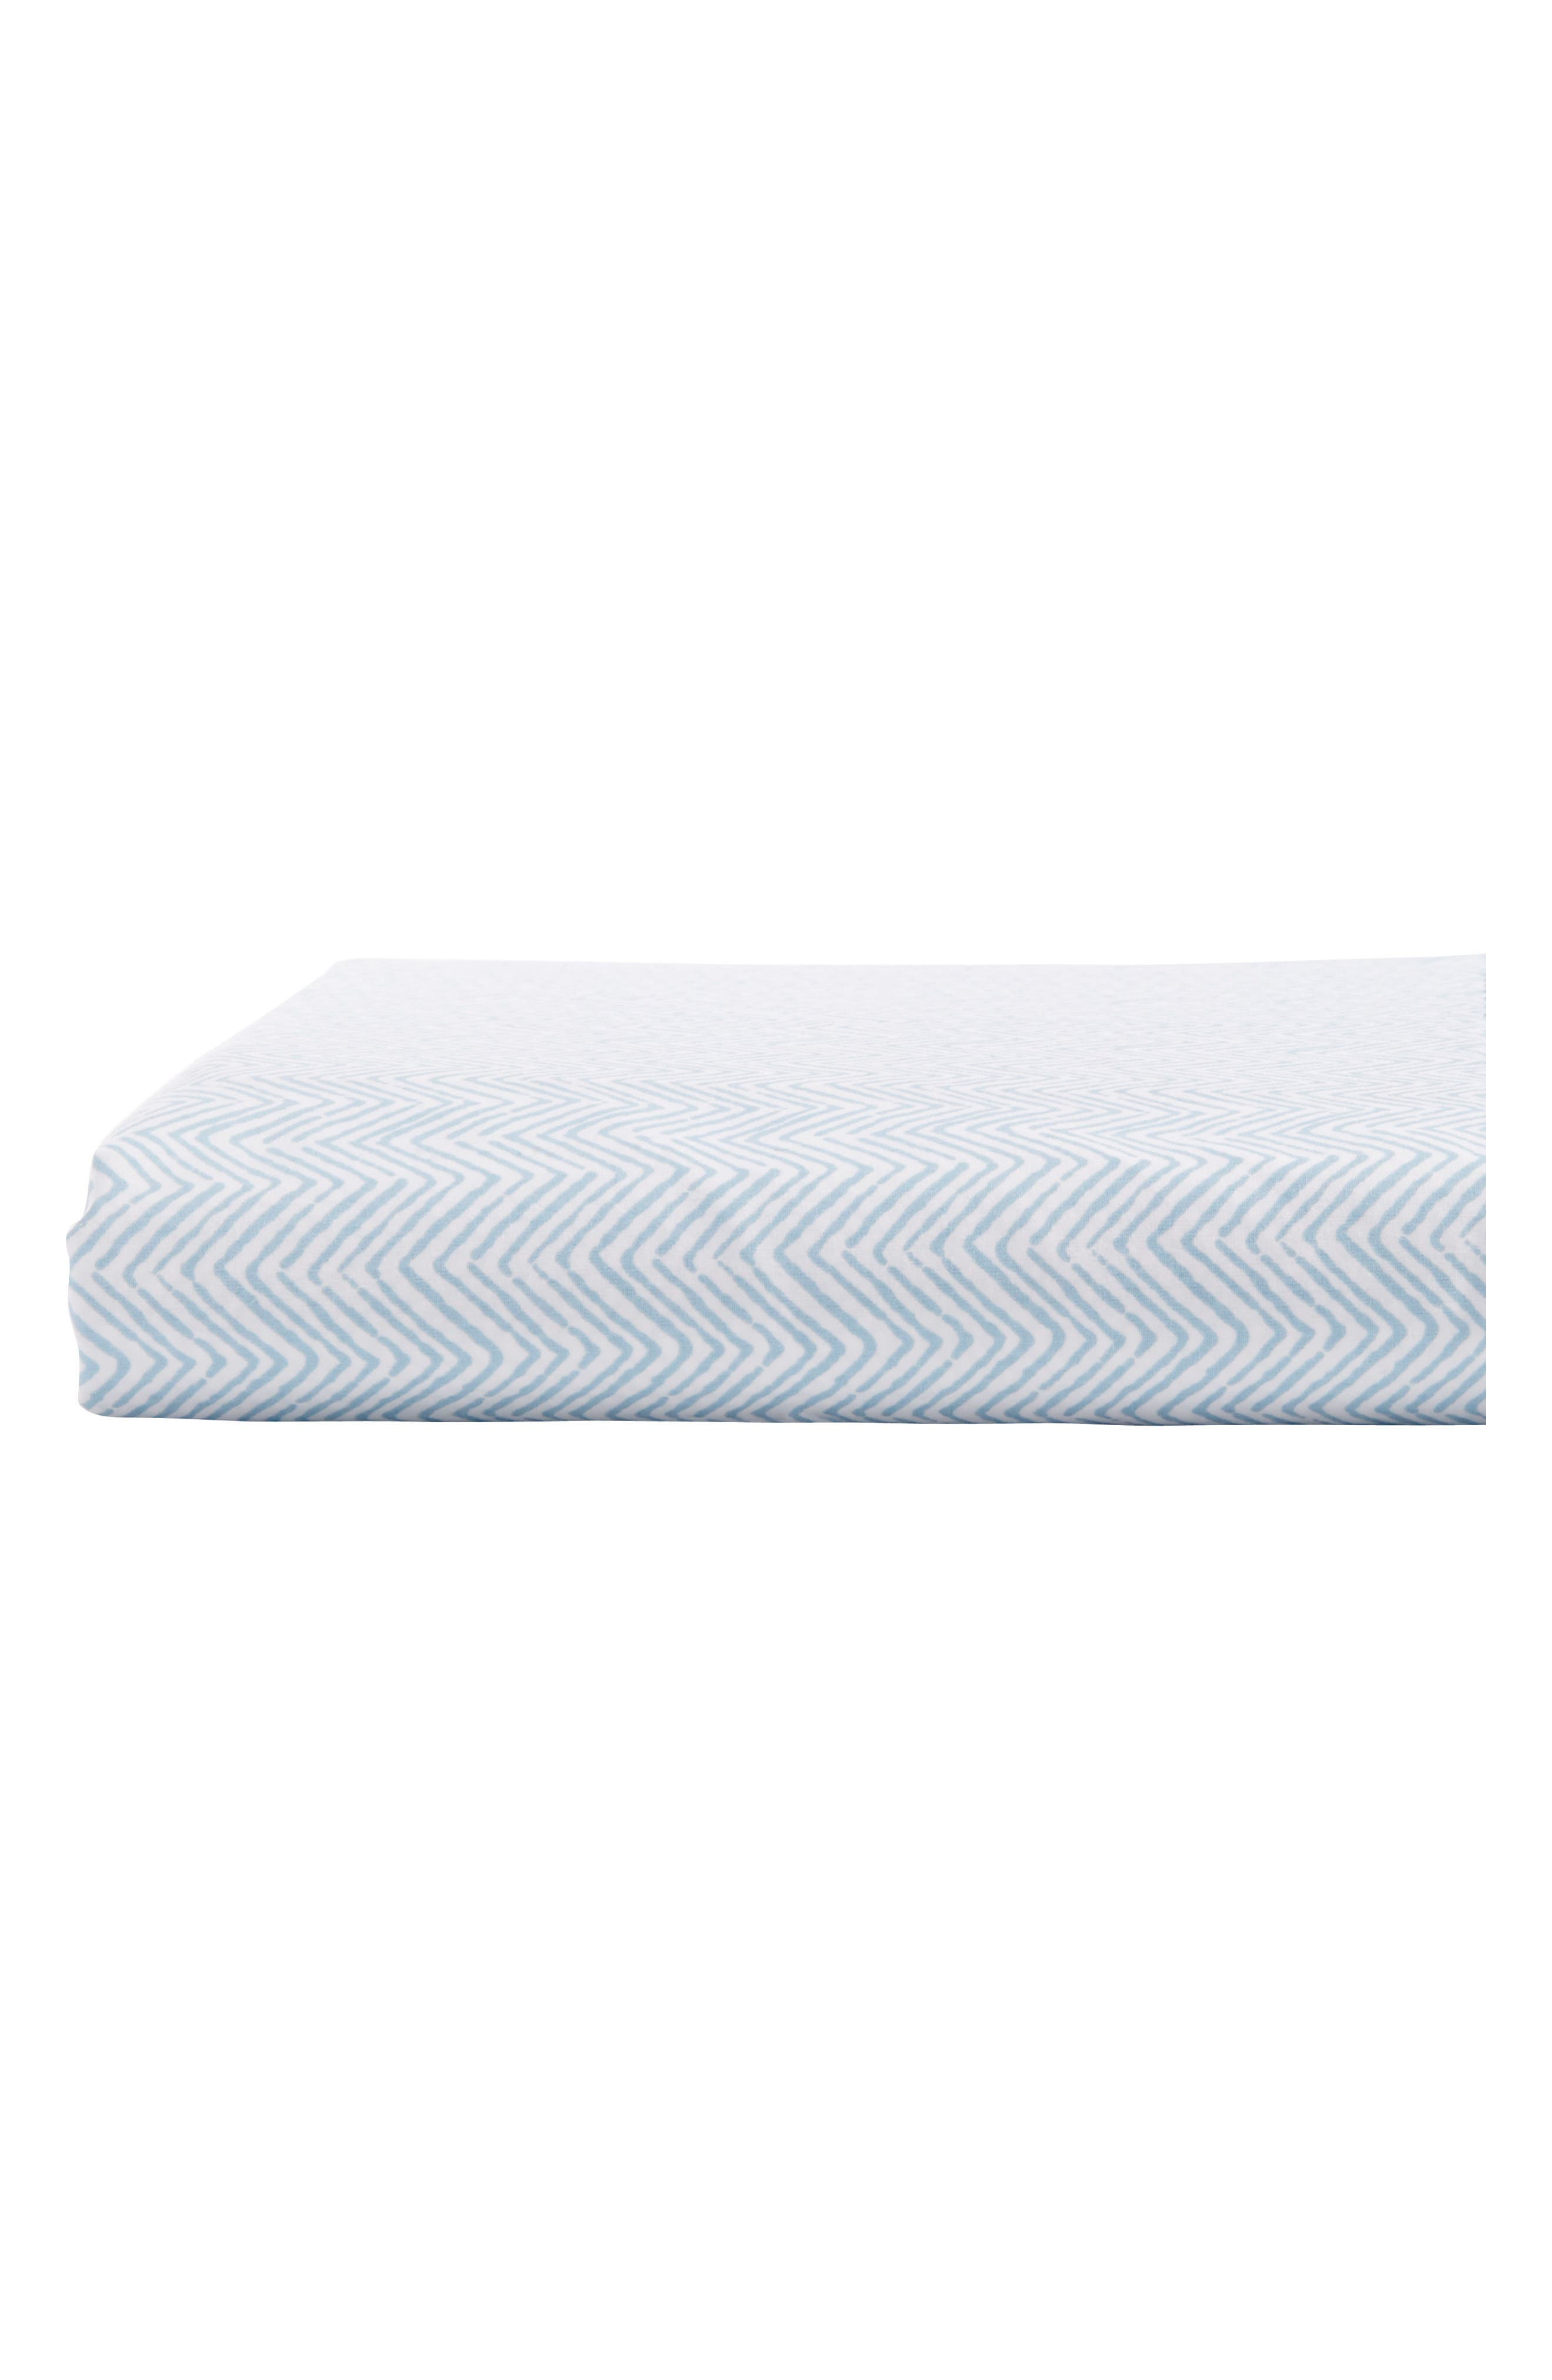 Main Image - John Robshaw Chevron 400 Thread Count Fitted Sheet